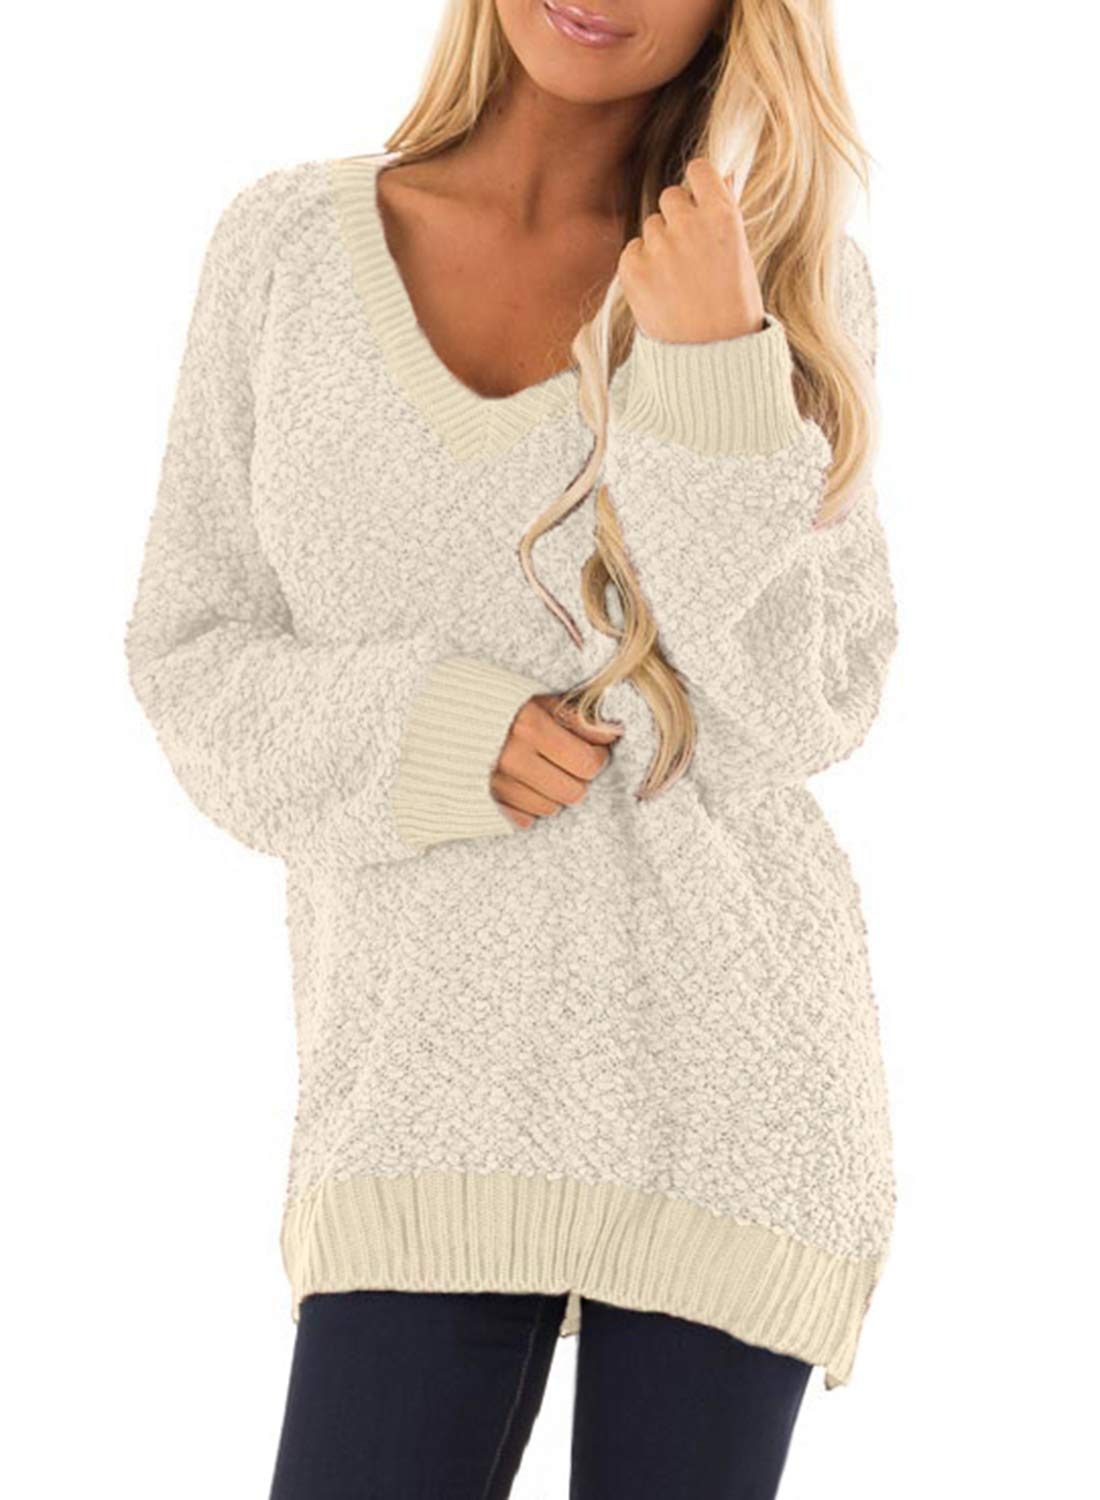 BLENCOT Women Fall Ladies Long Sleeve Sweaters Knitted Lightweight Solid Soft Jumper Pullover Tunic Sweaters Tops Apricot XL by BLENCOT